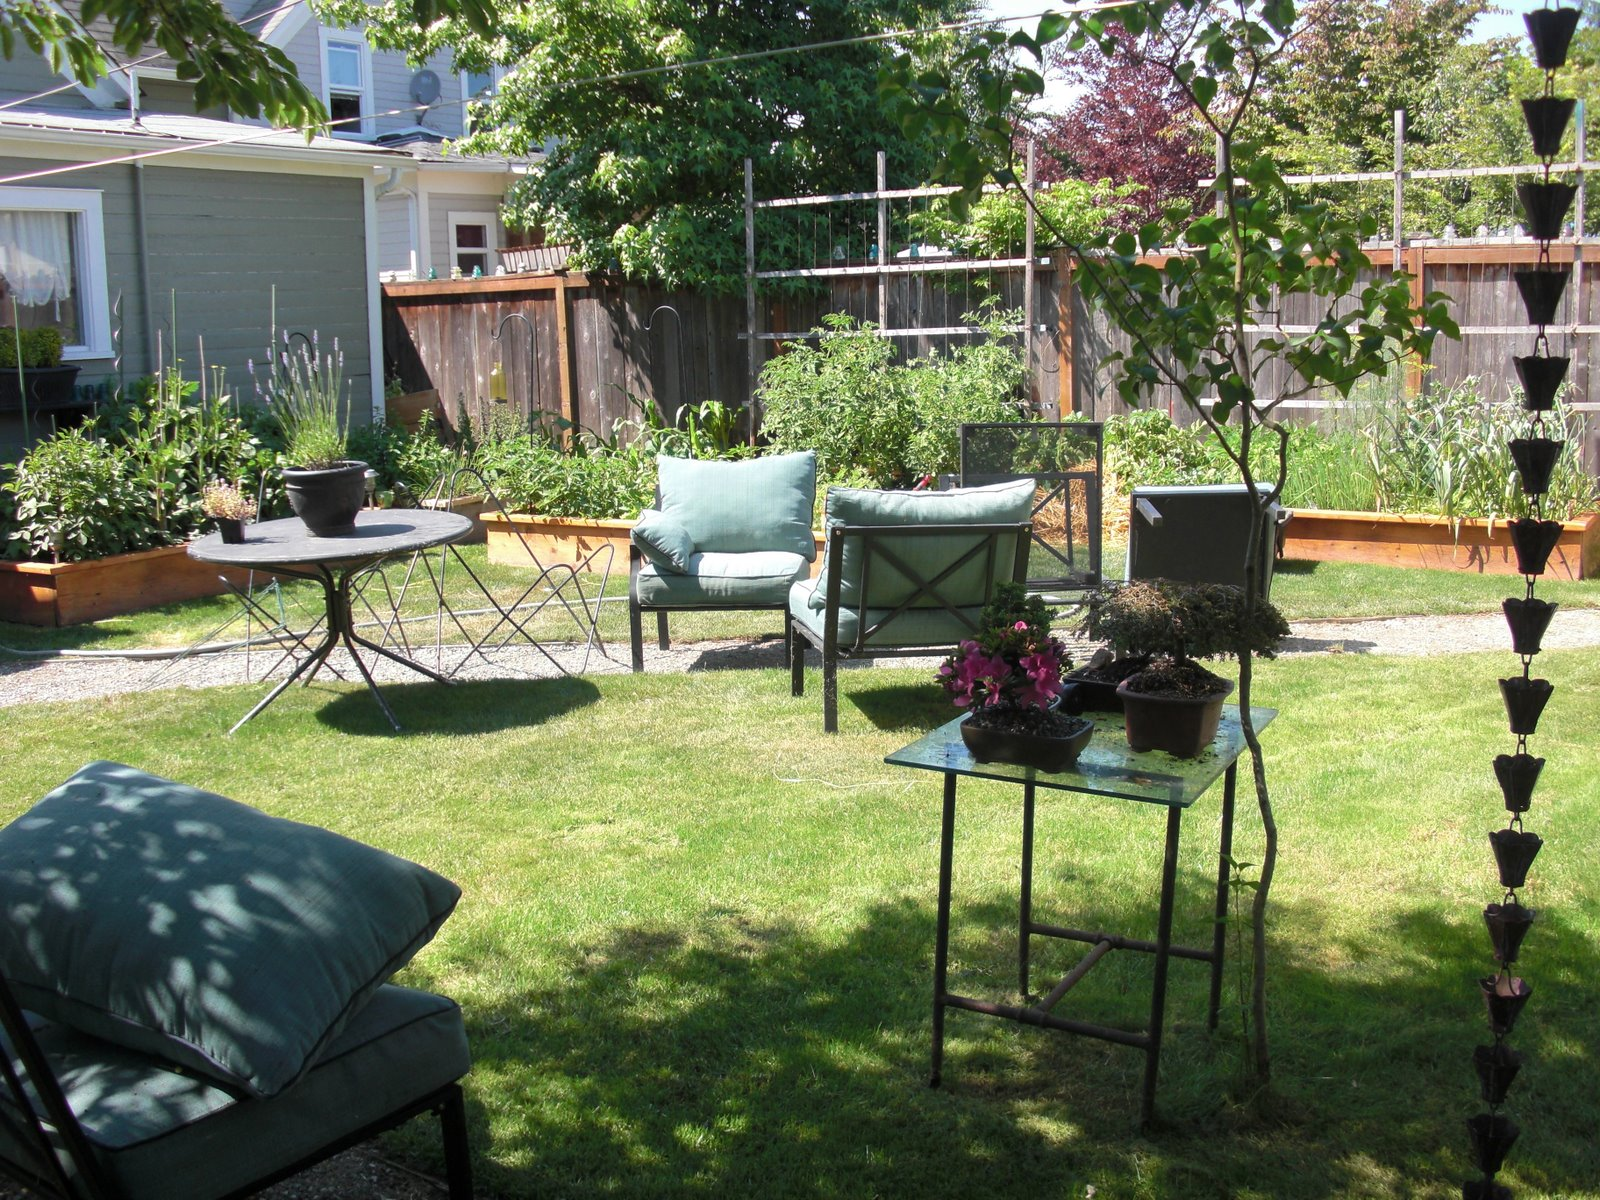 We Have A Patch Of Grass In The Middle Of Our Back Yard That Acts As A Patio  With Our Outdoor Sectional, Bar B Que, Fire Pit And Table.